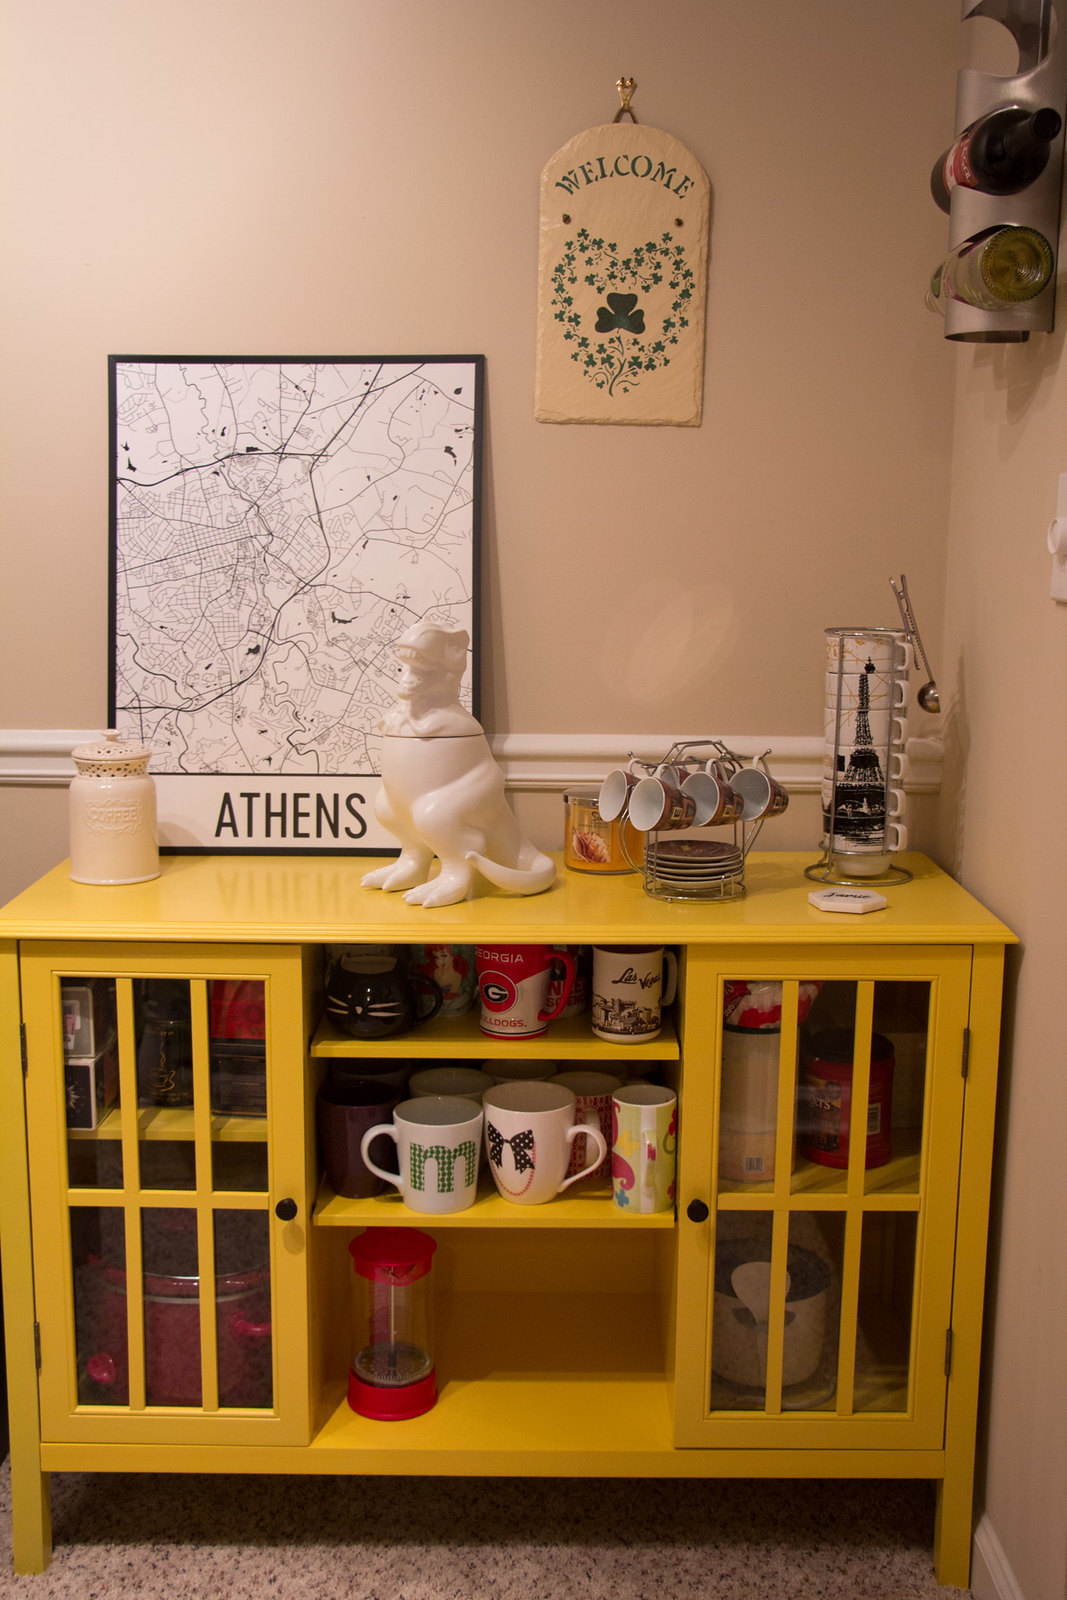 Athens Georgia Modern Map Art Print on a Yellow Coffee Cabinet